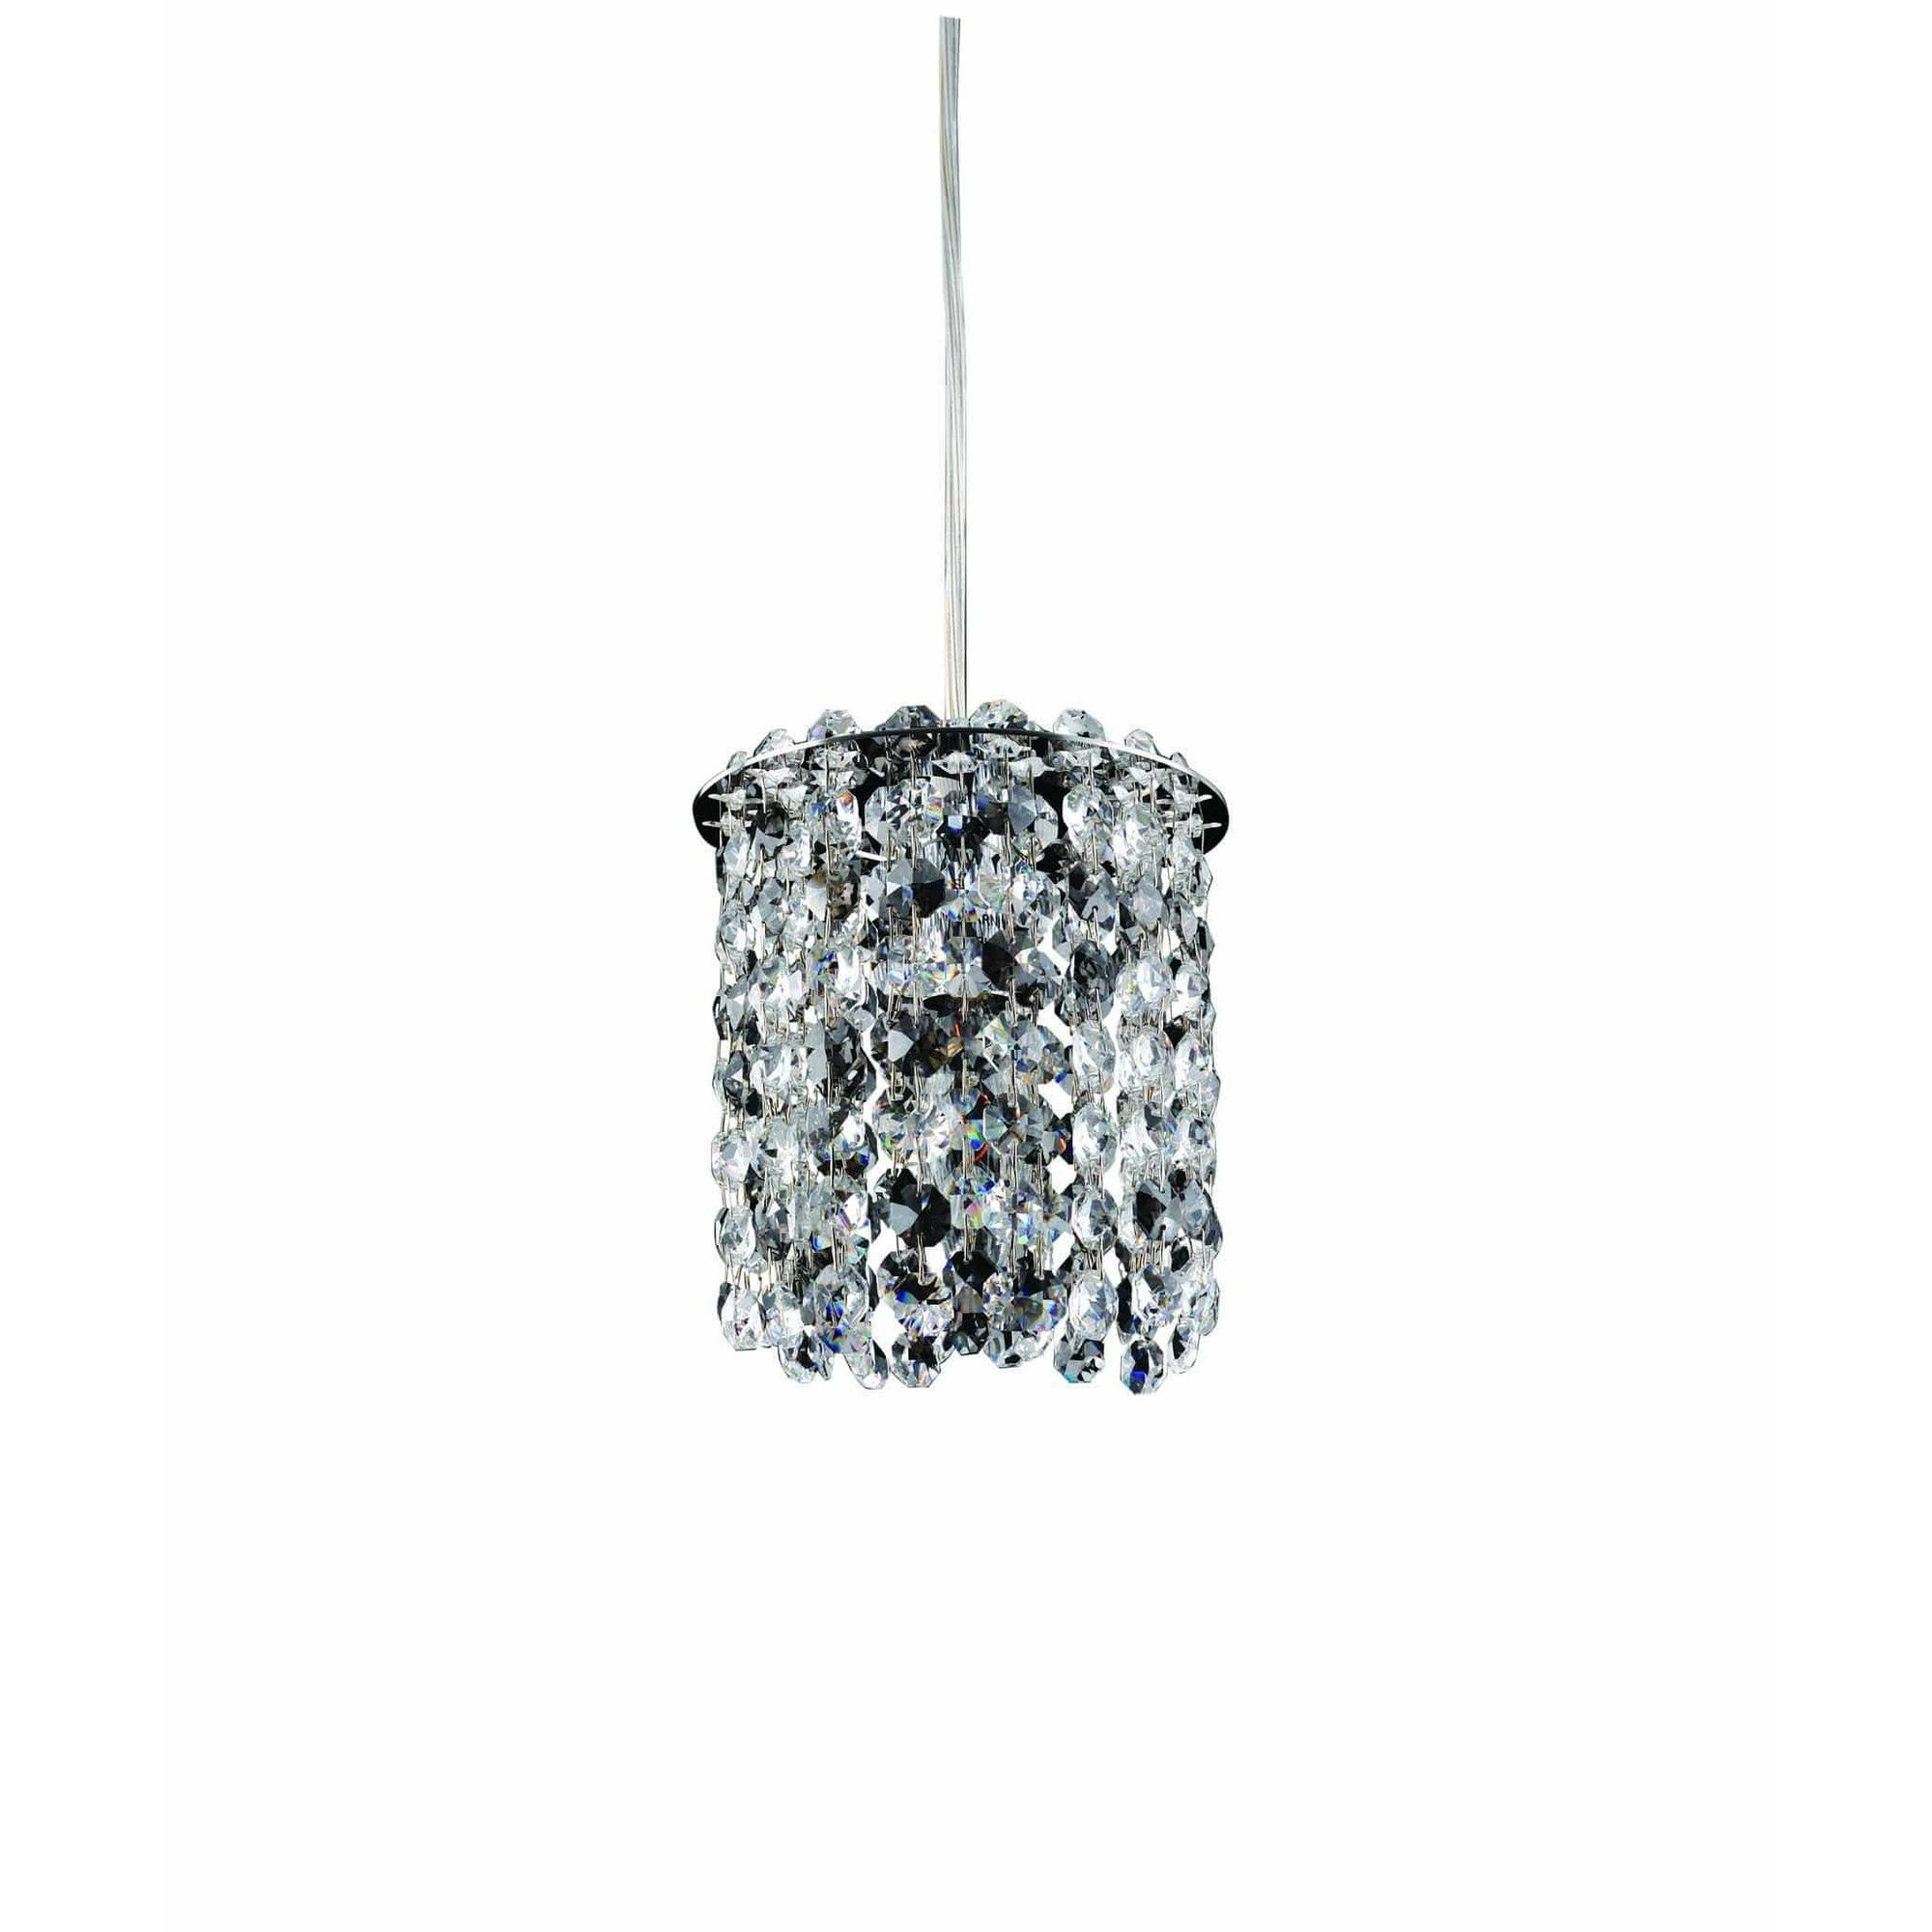 Allegri by Kalco Lighting Mini Pendants Chrome / Firenze Clear Milieu 1 Light Mini Pendant From Allegri by Kalco Lighting 11760